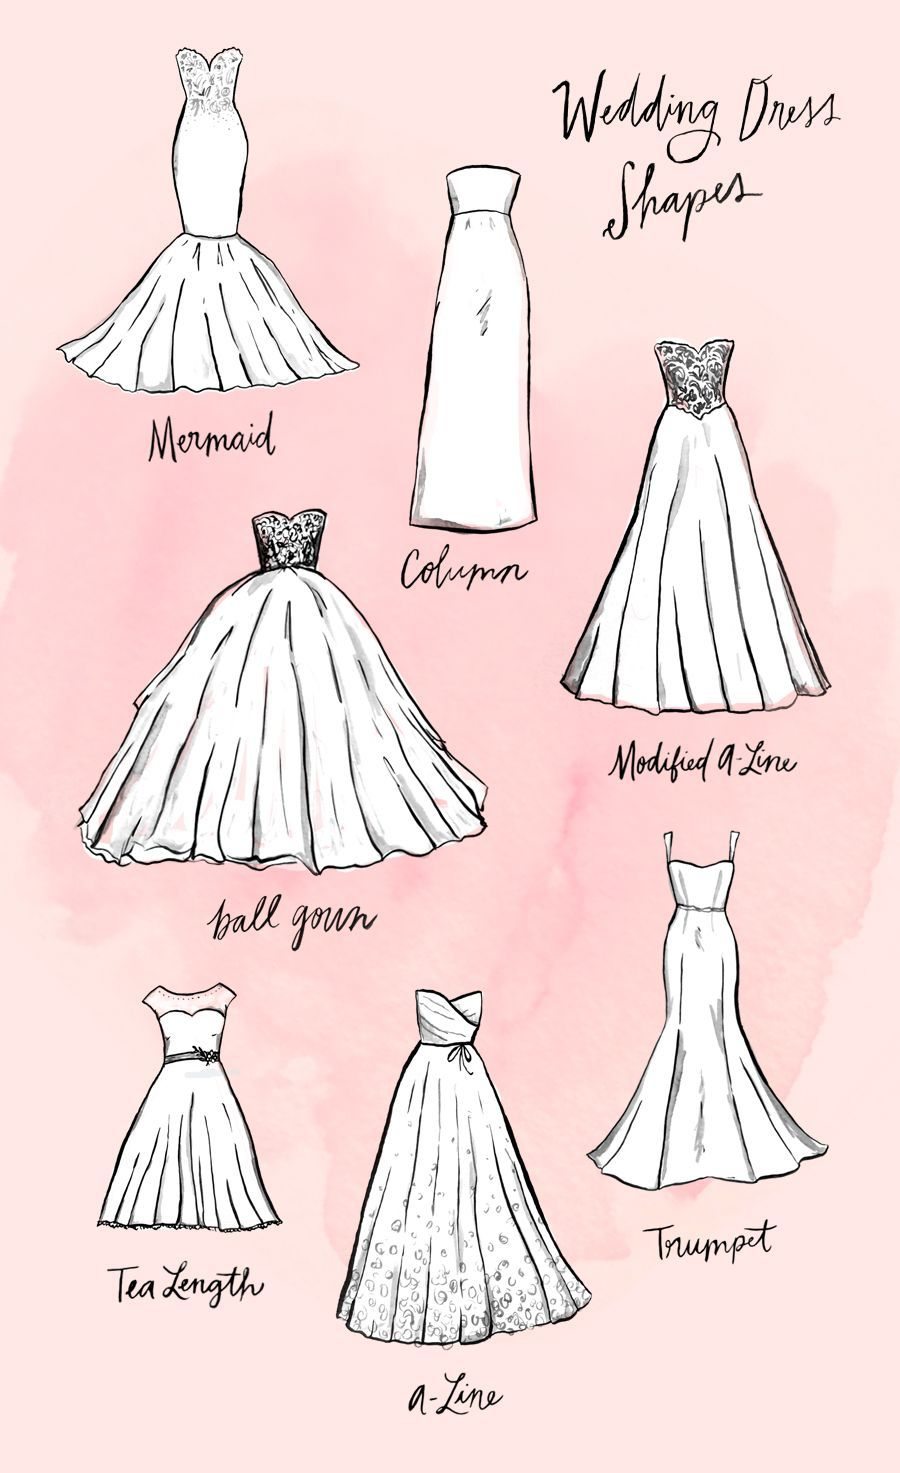 Everything You Ever Wanted to Know About Wedding Dress Silhouettes - Everything You Ever Wanted to Know About Wedding Dress Silhouettes    Searching for the perfect wedd - #CelebritiesFashion #CelebrityStyle #dress #FashionDesigners #FashionTrends #Louisuitton #LouisVuittonHandbags #LouisVuittonMonogram #LvHandbags #MichaelKorsBag #RayBanOutlet #RayBanSunglasses #RayBans #RunwayFashion #silhouettes #StylingTips #TomShoes #TomsOutlet #TomsShoesOutlet #Wanted #Wedding #WhoWhatWear